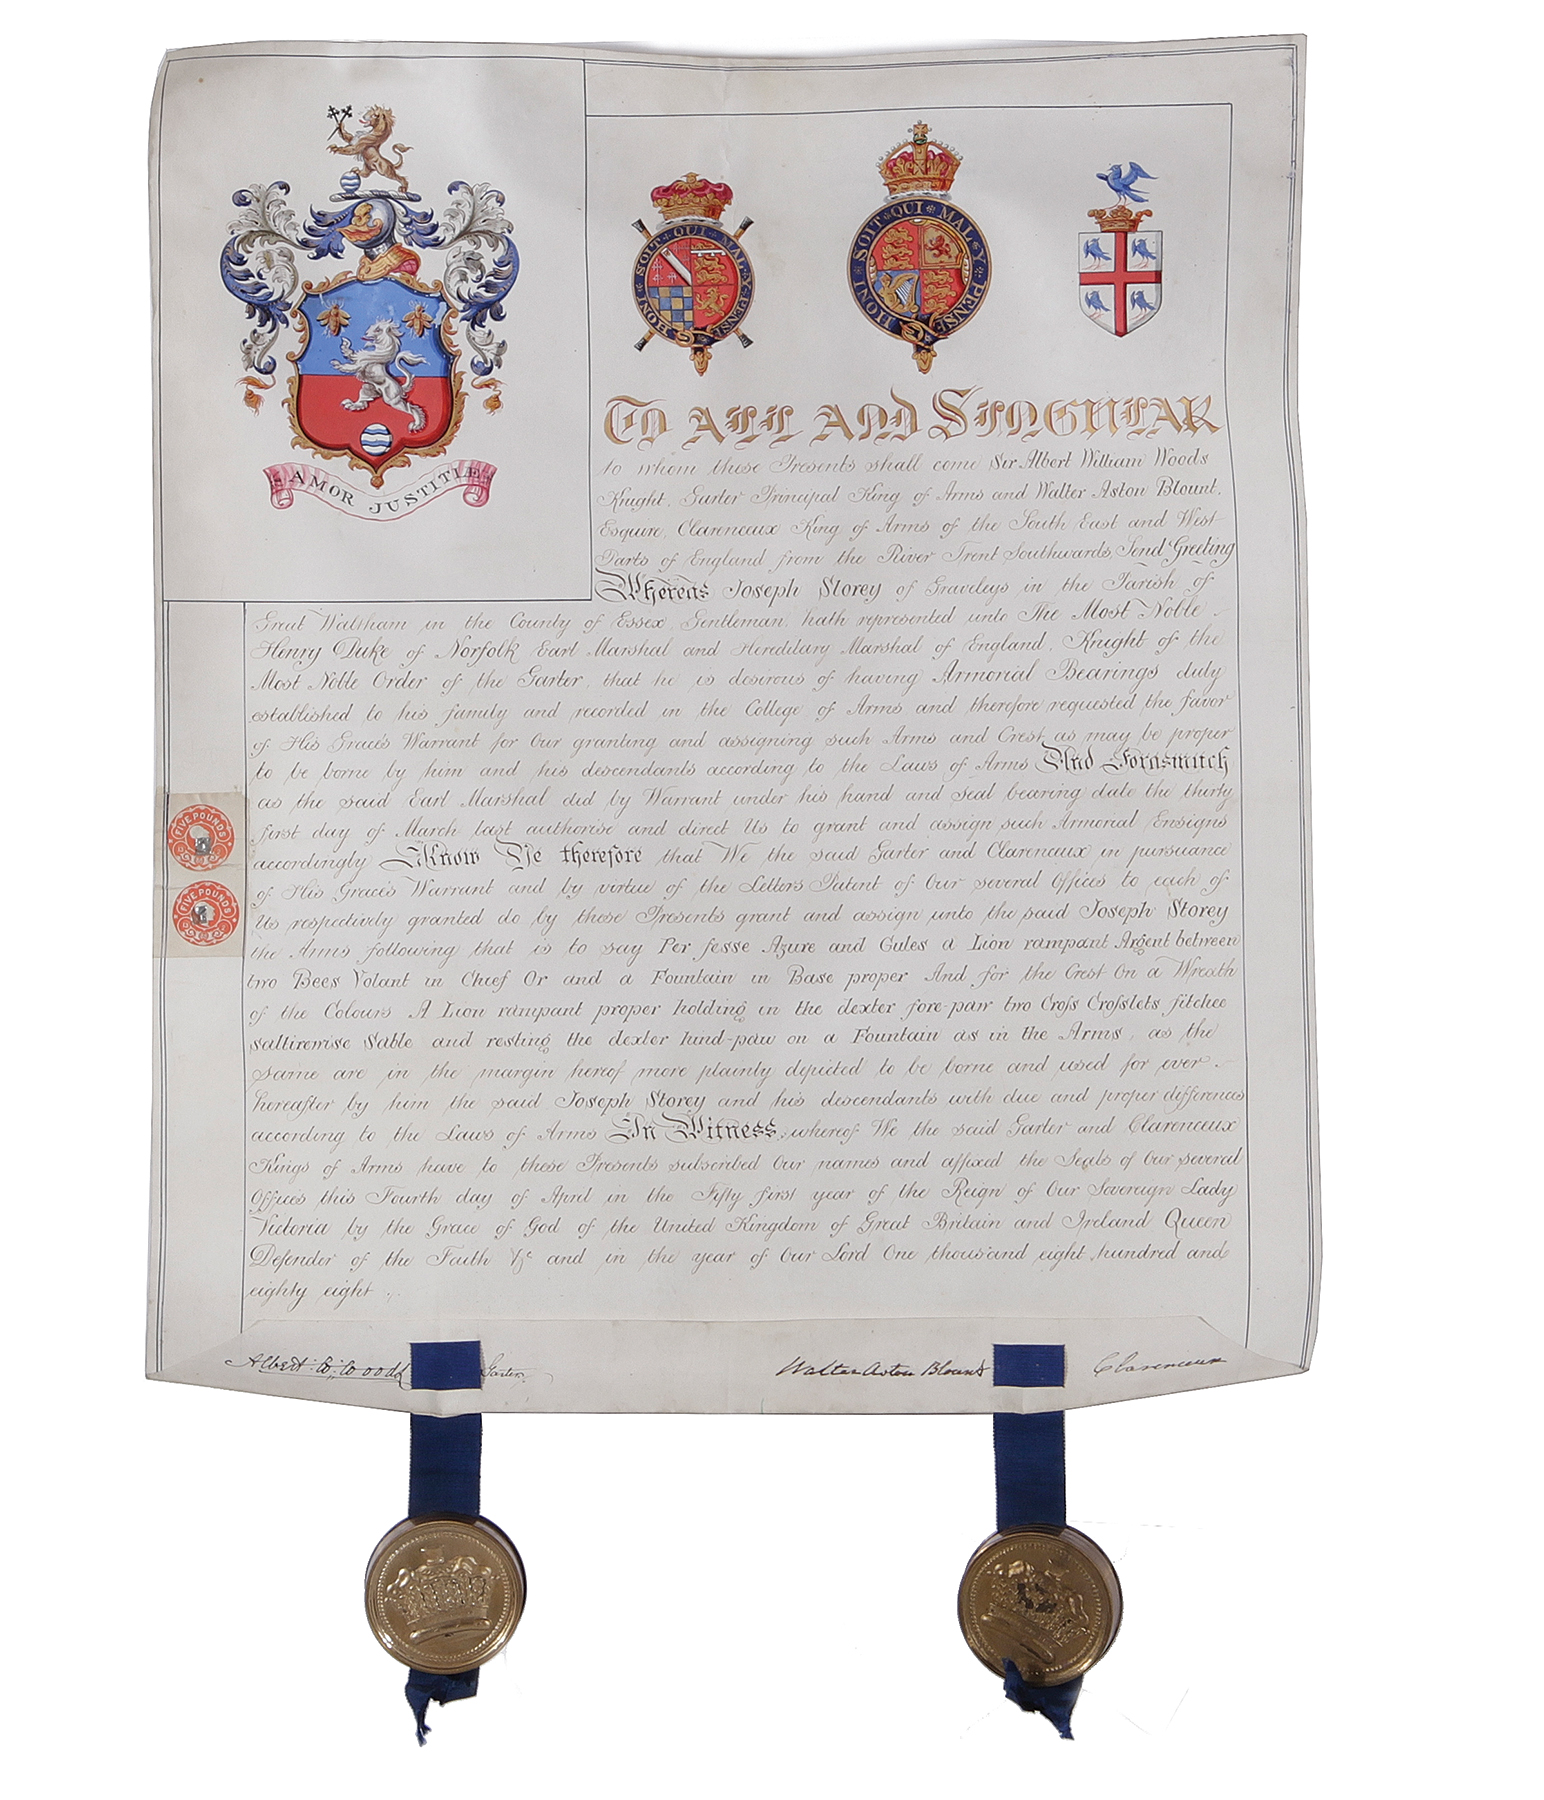 Lot 1348 - Grant of arms to Joseph StoreyProvenance: Georgia collectionPlease check our website for updated